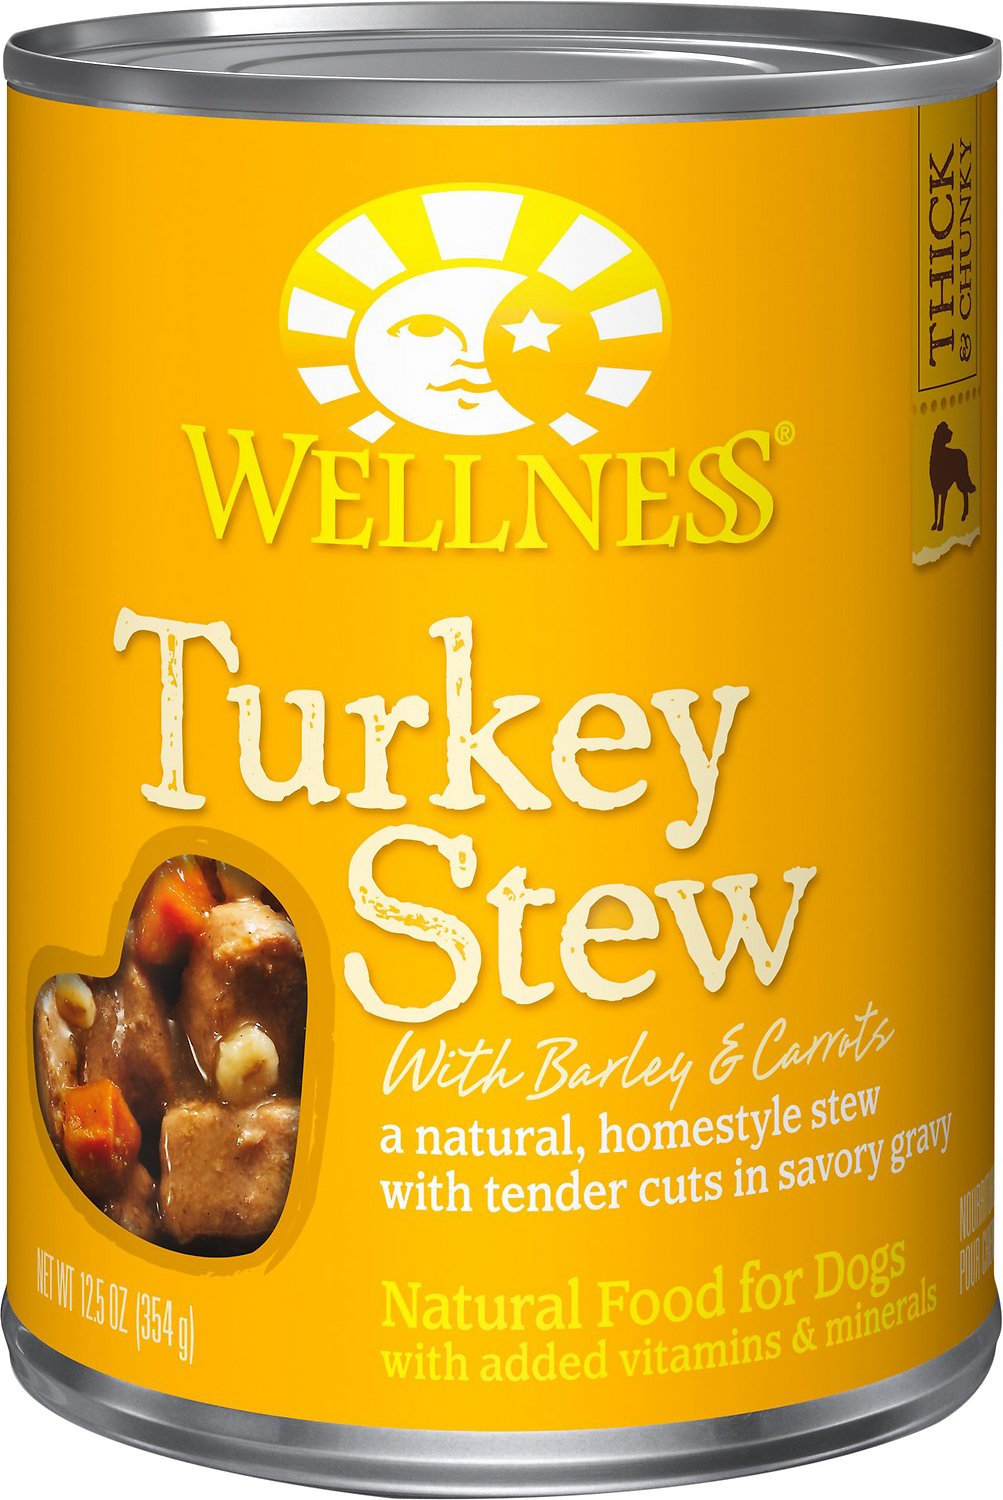 Wellness Homestyle Stew Turkey with Barley & Carrots Canned Dog Food, 12.5-oz